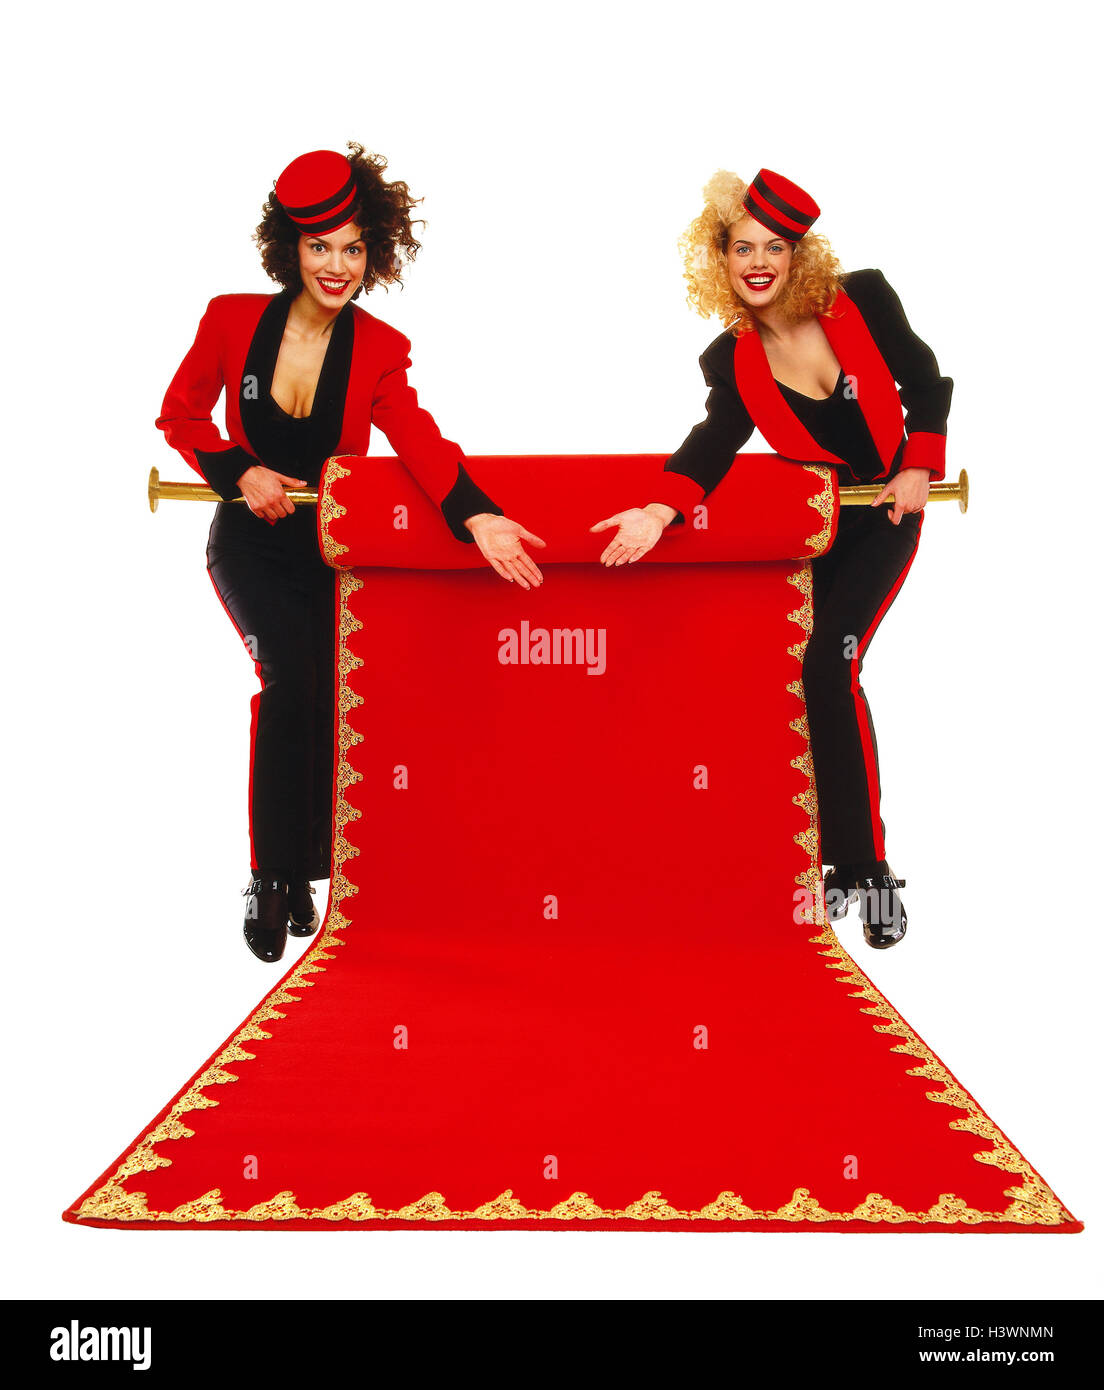 Women, page's livery, carpet, red, roll out, gesture, received, present concepts, pages, page, female, two, - Stock Image